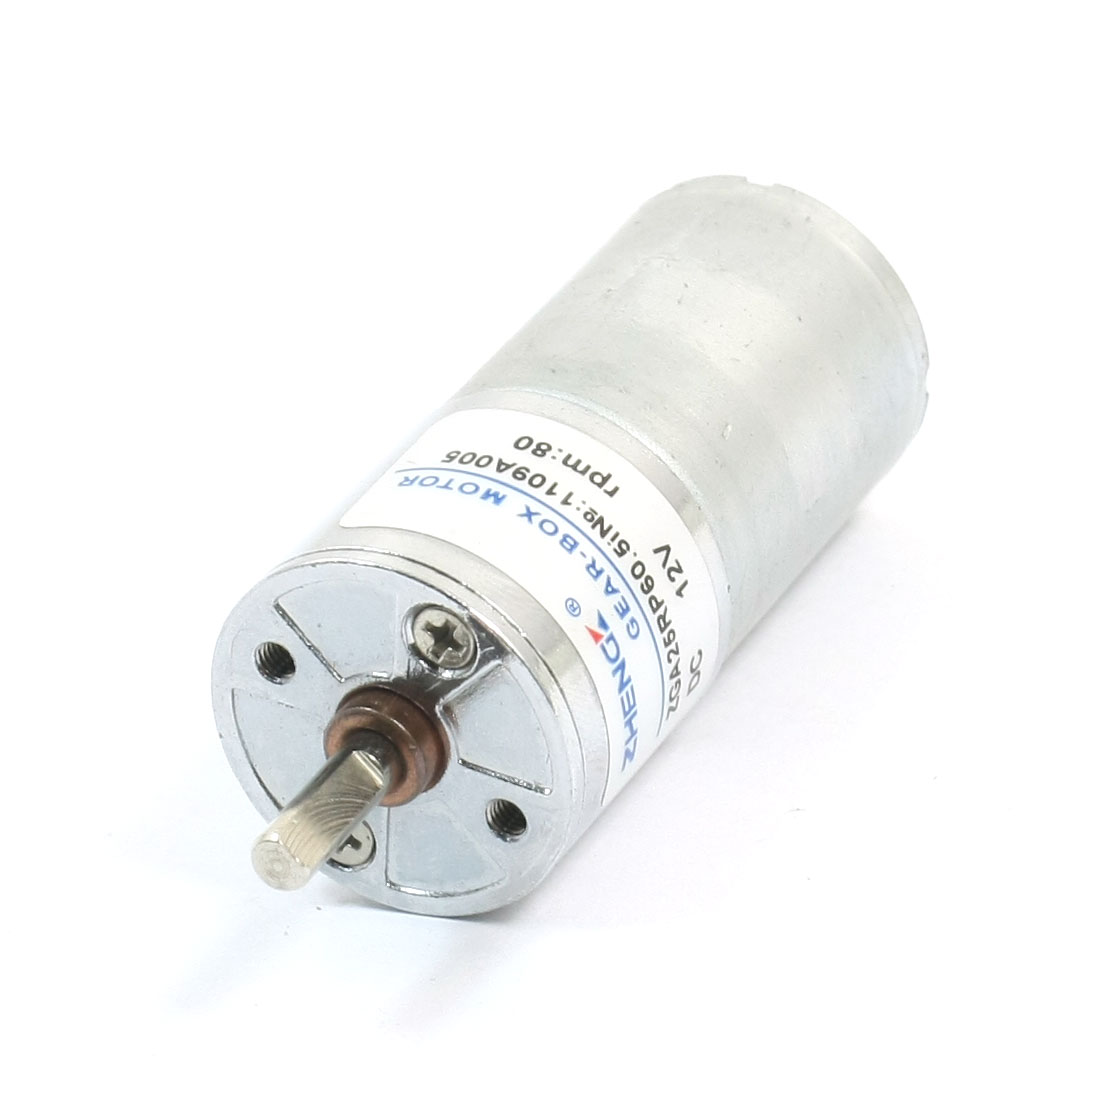 Cylinder 2.5mm Thread Hole Dia Metal Gear Box Motor DC12V 80RPM